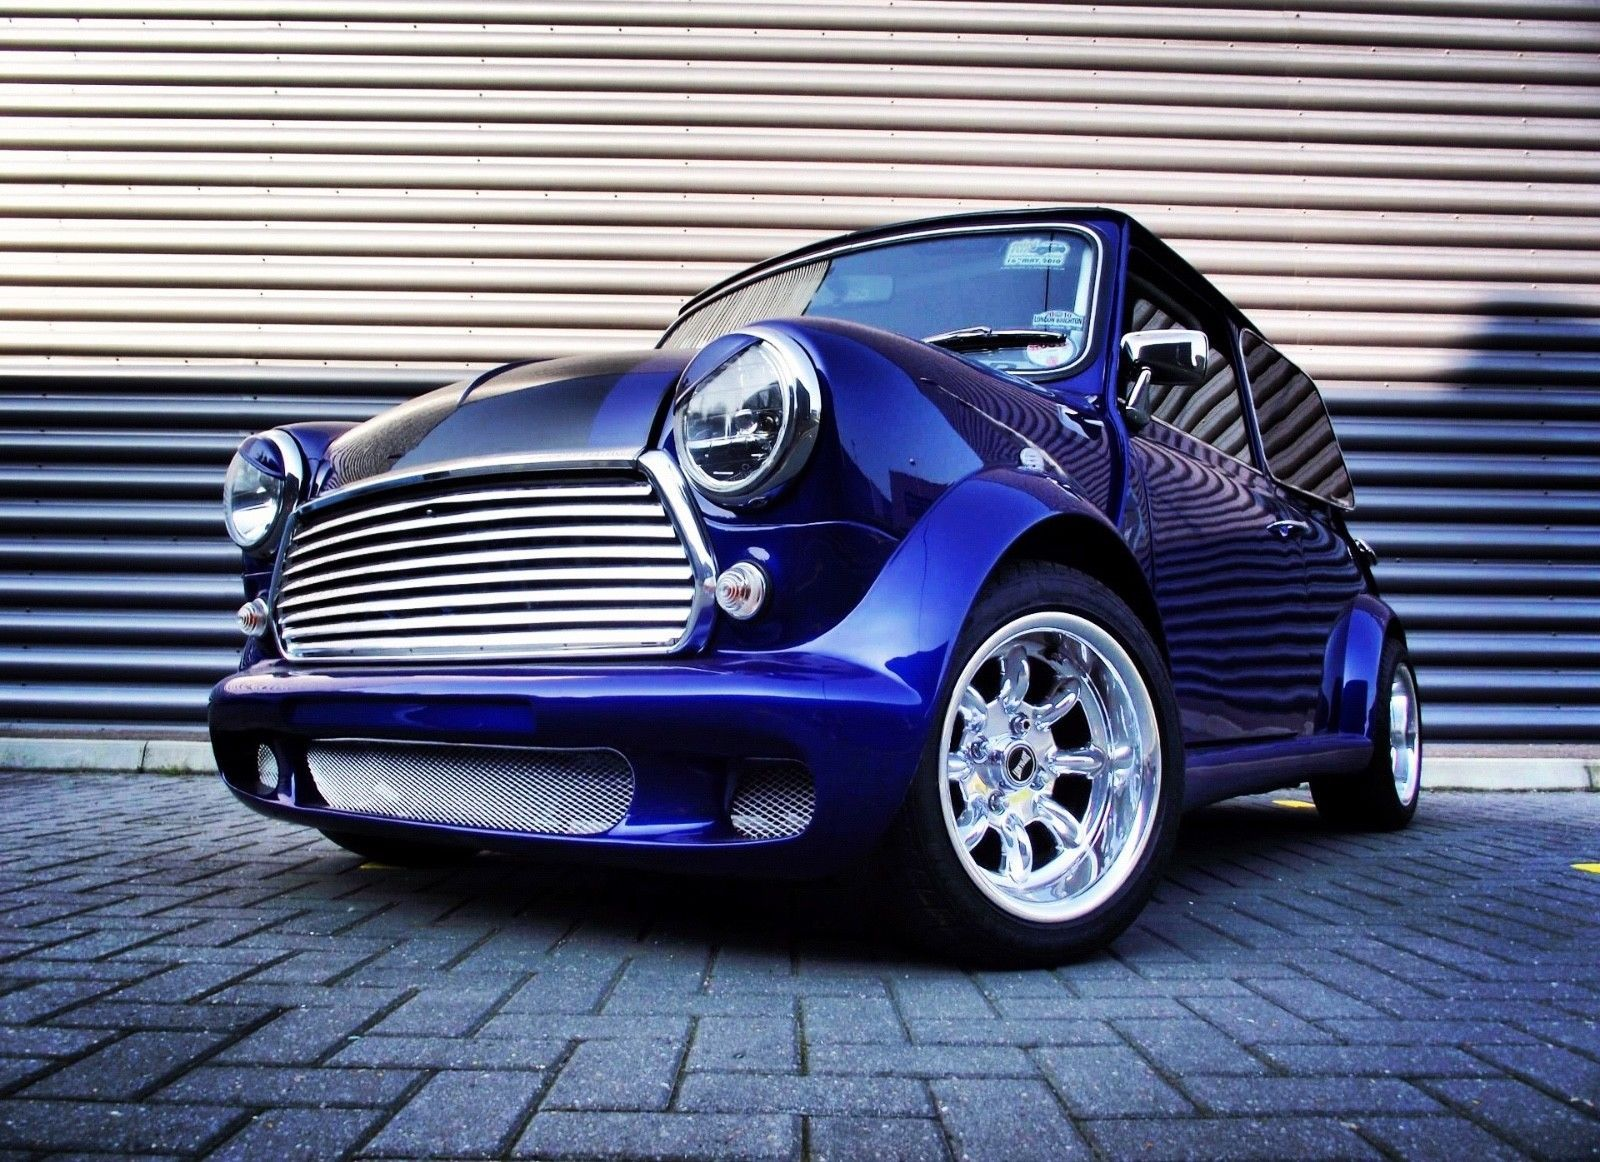 eBay ROVER CLASSIC MINI 30 1293 SUPERCHARGED SHOW CAR